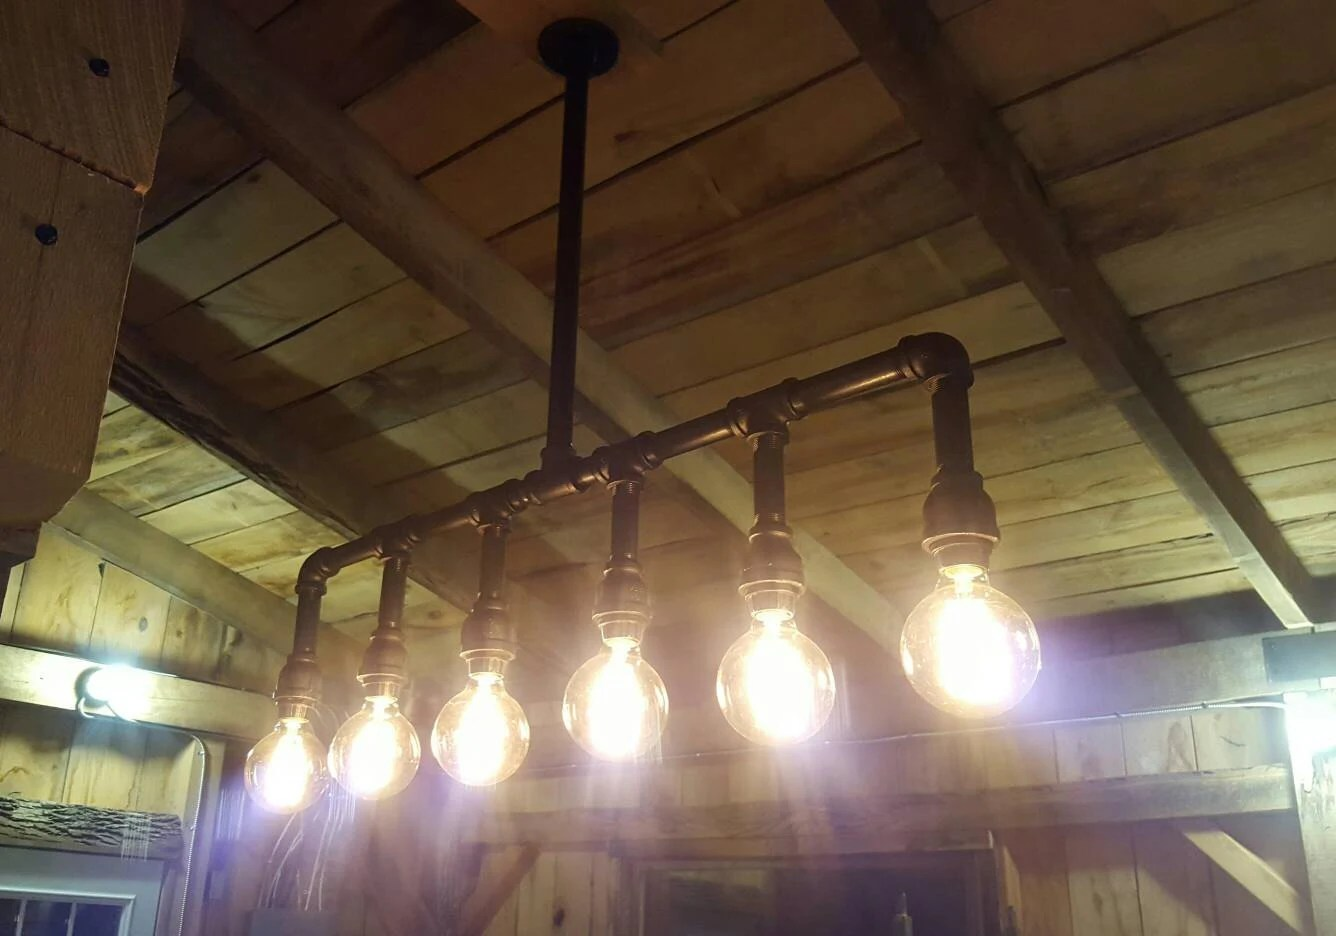 farmhouse lighting farmhouse kitchen lighting fixtures Industrial Lighting Rustic Kitchen Island Ceiling Light Modern Industrial Edison Bulb Kitchen Chandelier Farmhouse Lighting FREE SHIPPING